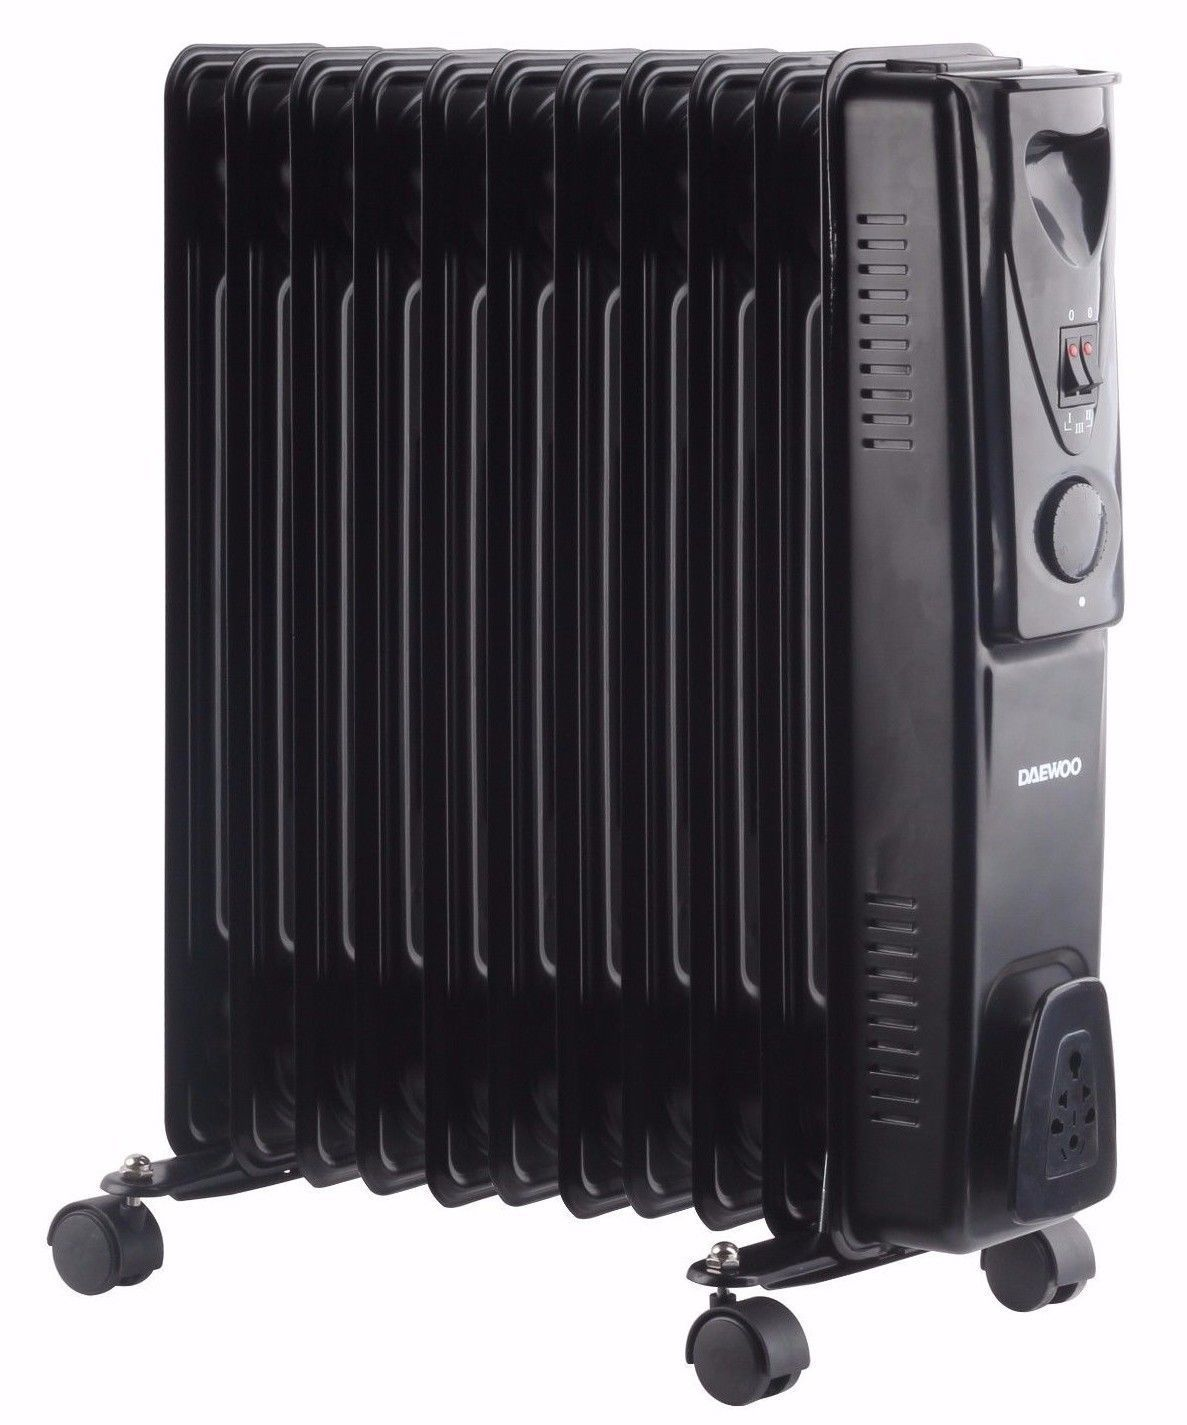 Daewoo Oil Filled Radiator 2000W 3 Heat Settings BLACK